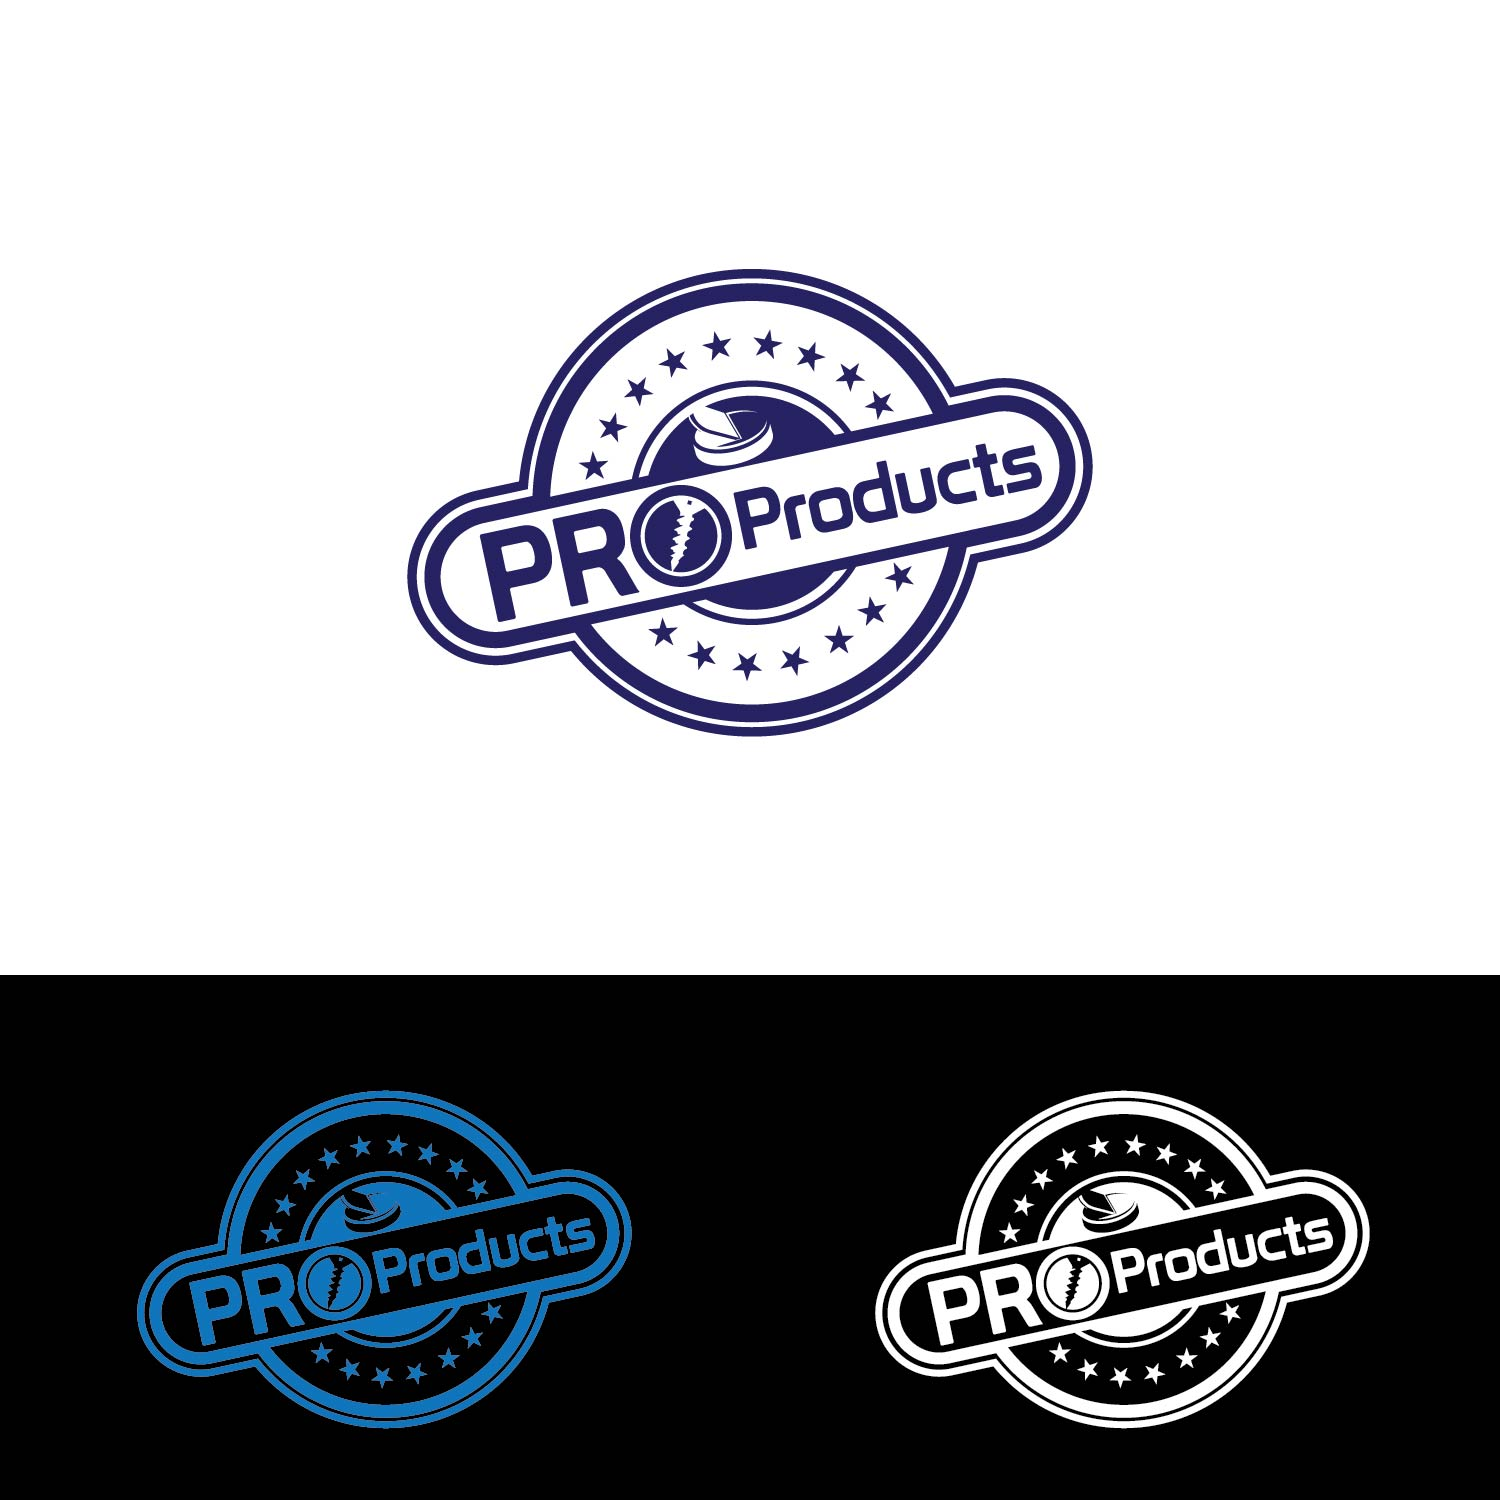 Logo Design by lagalag - Entry No. 21 in the Logo Design Contest Fun yet Professional Logo Design for ProProducts.